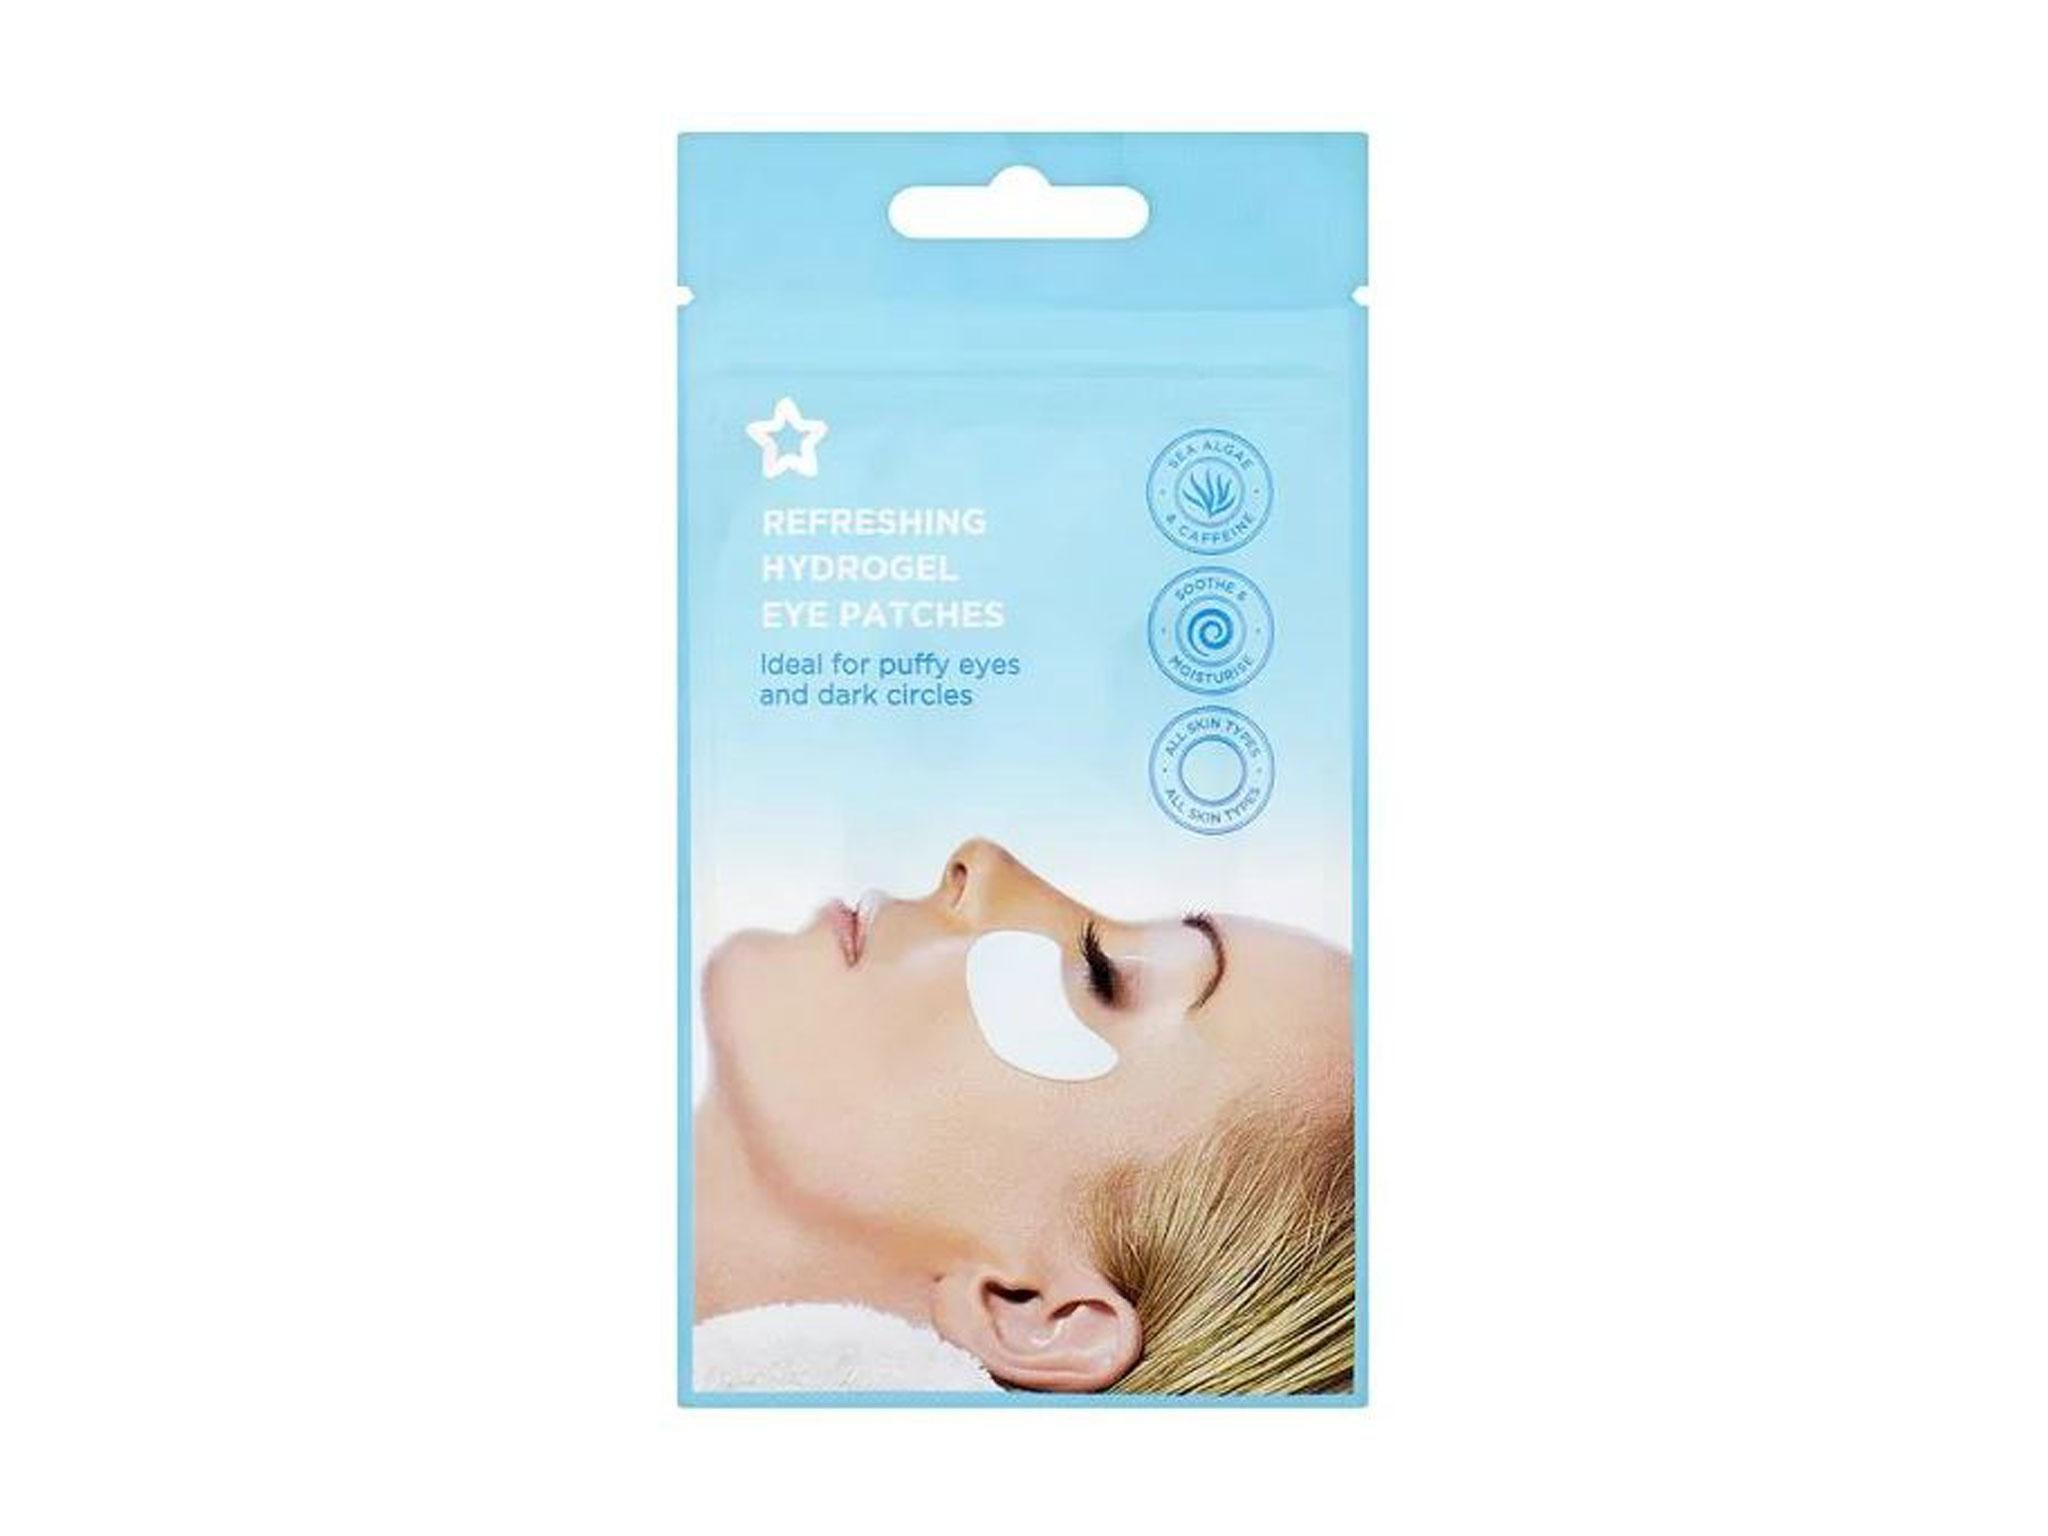 10 best anti-aging eye masks   The Independent